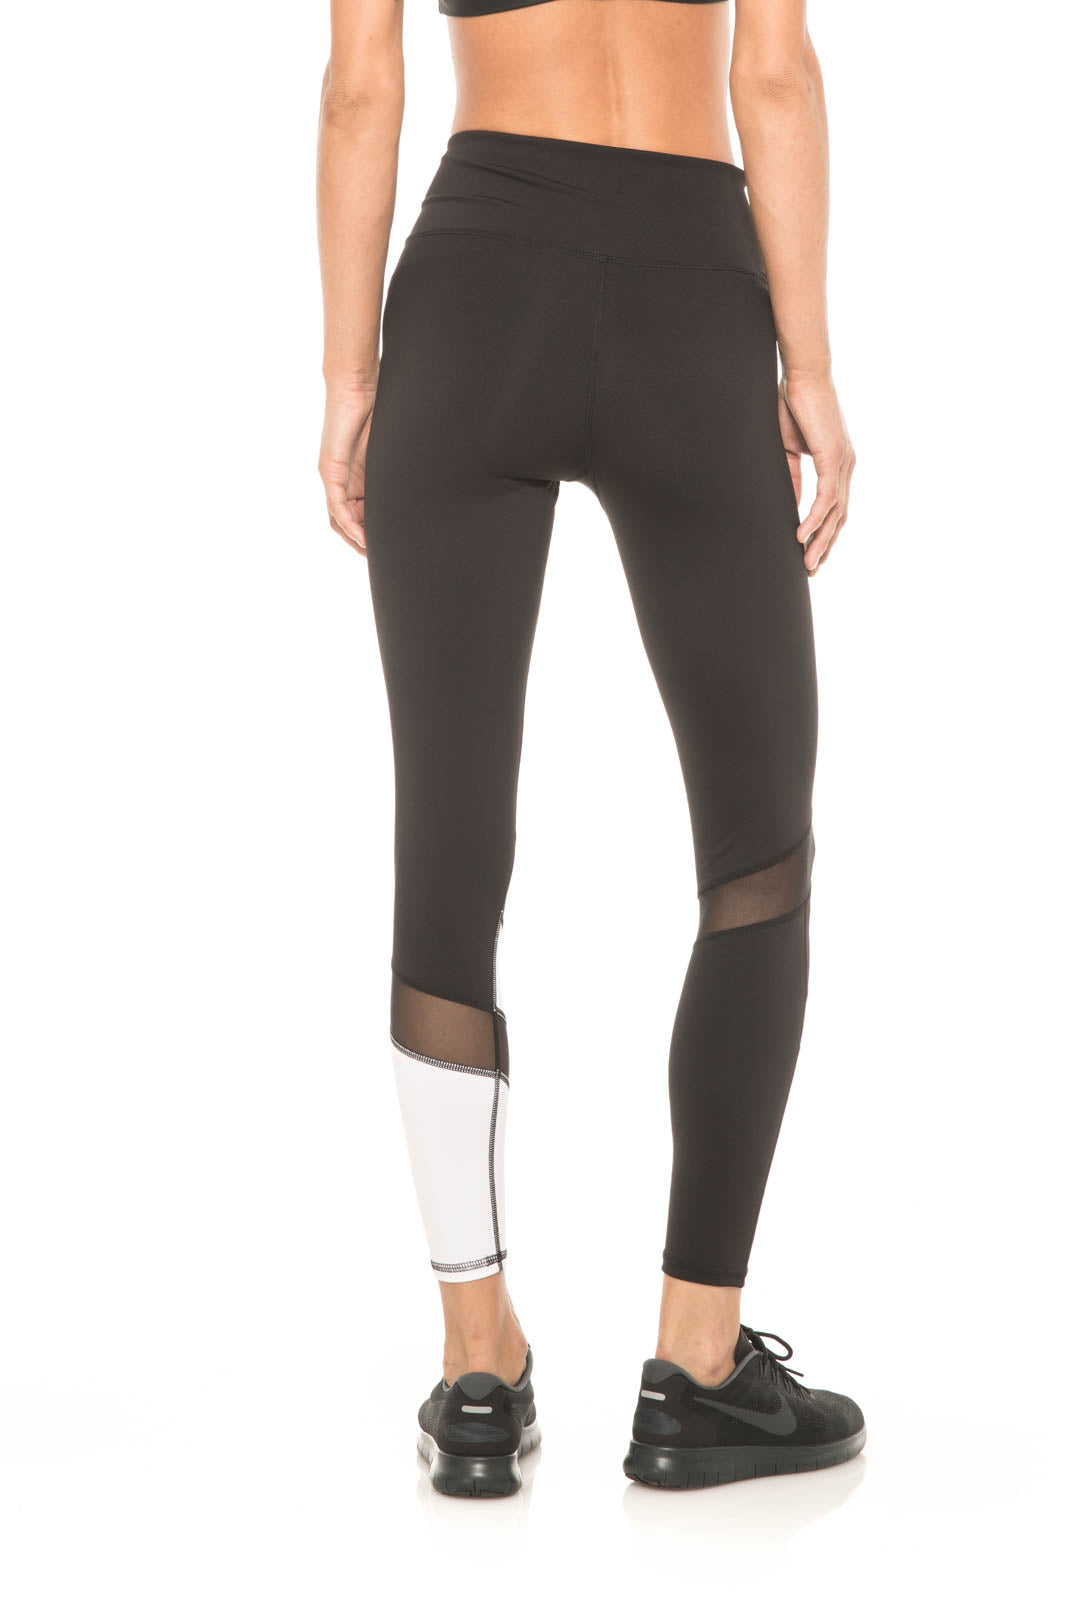 Women - Apparel - Active Wear - Bottom:Body Language Sportswear:Gianna Legging:WKND threads